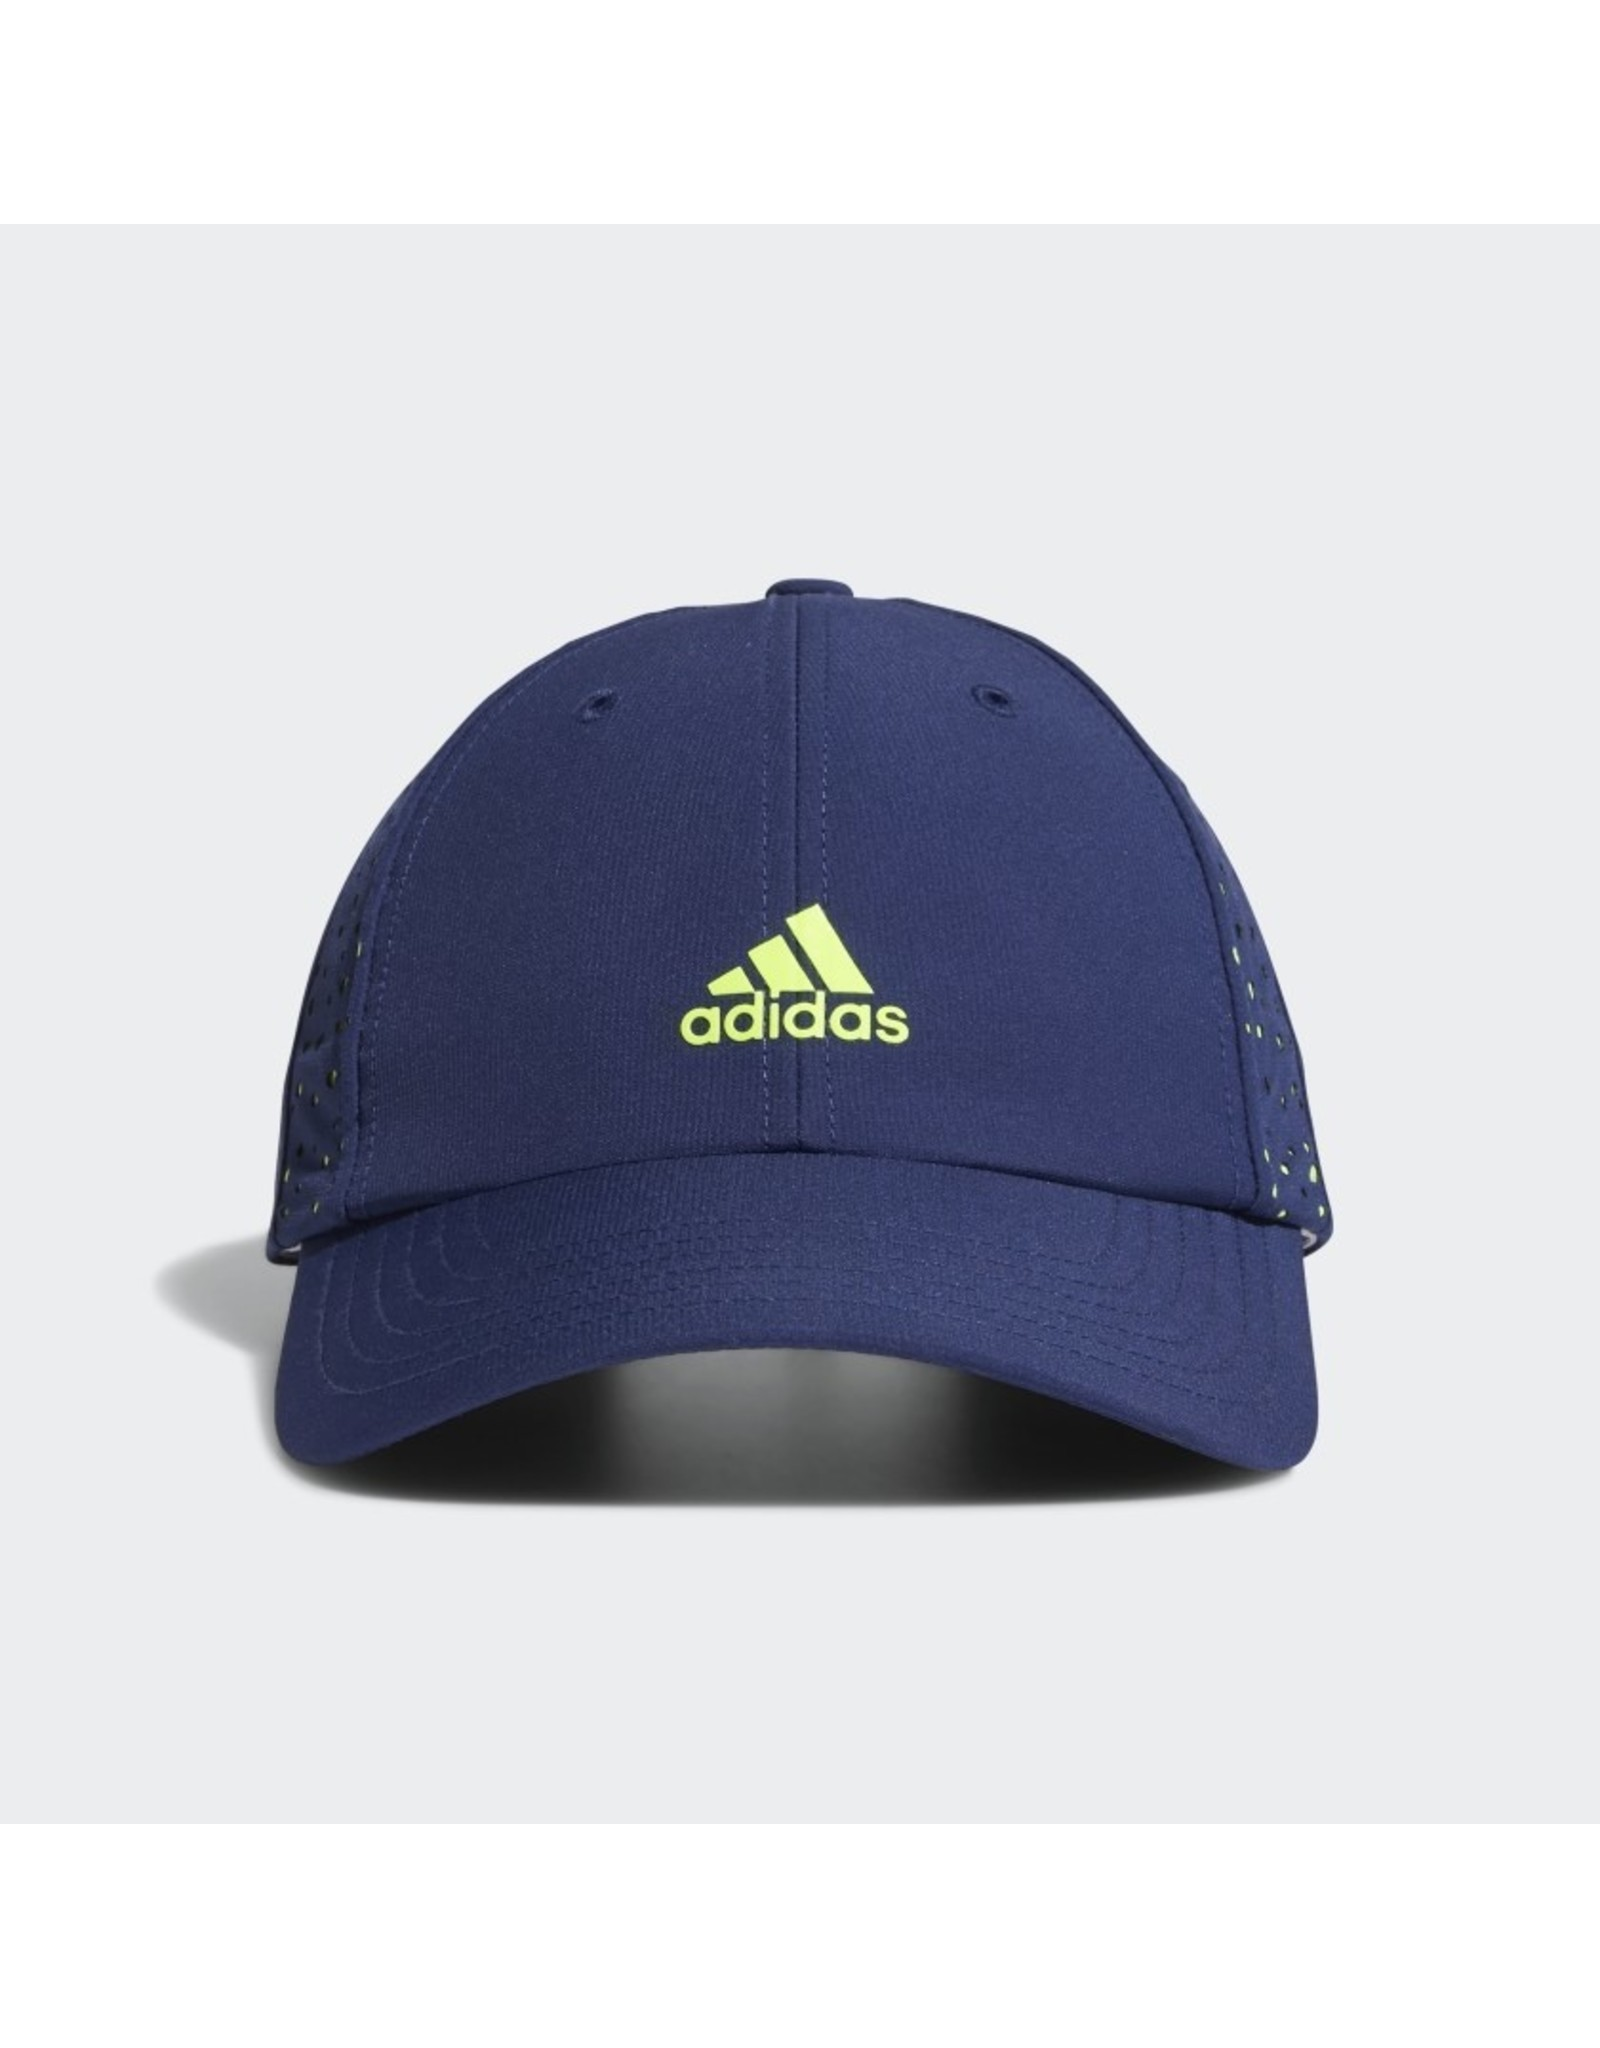 Adidas Adi Ladies PERF Hat